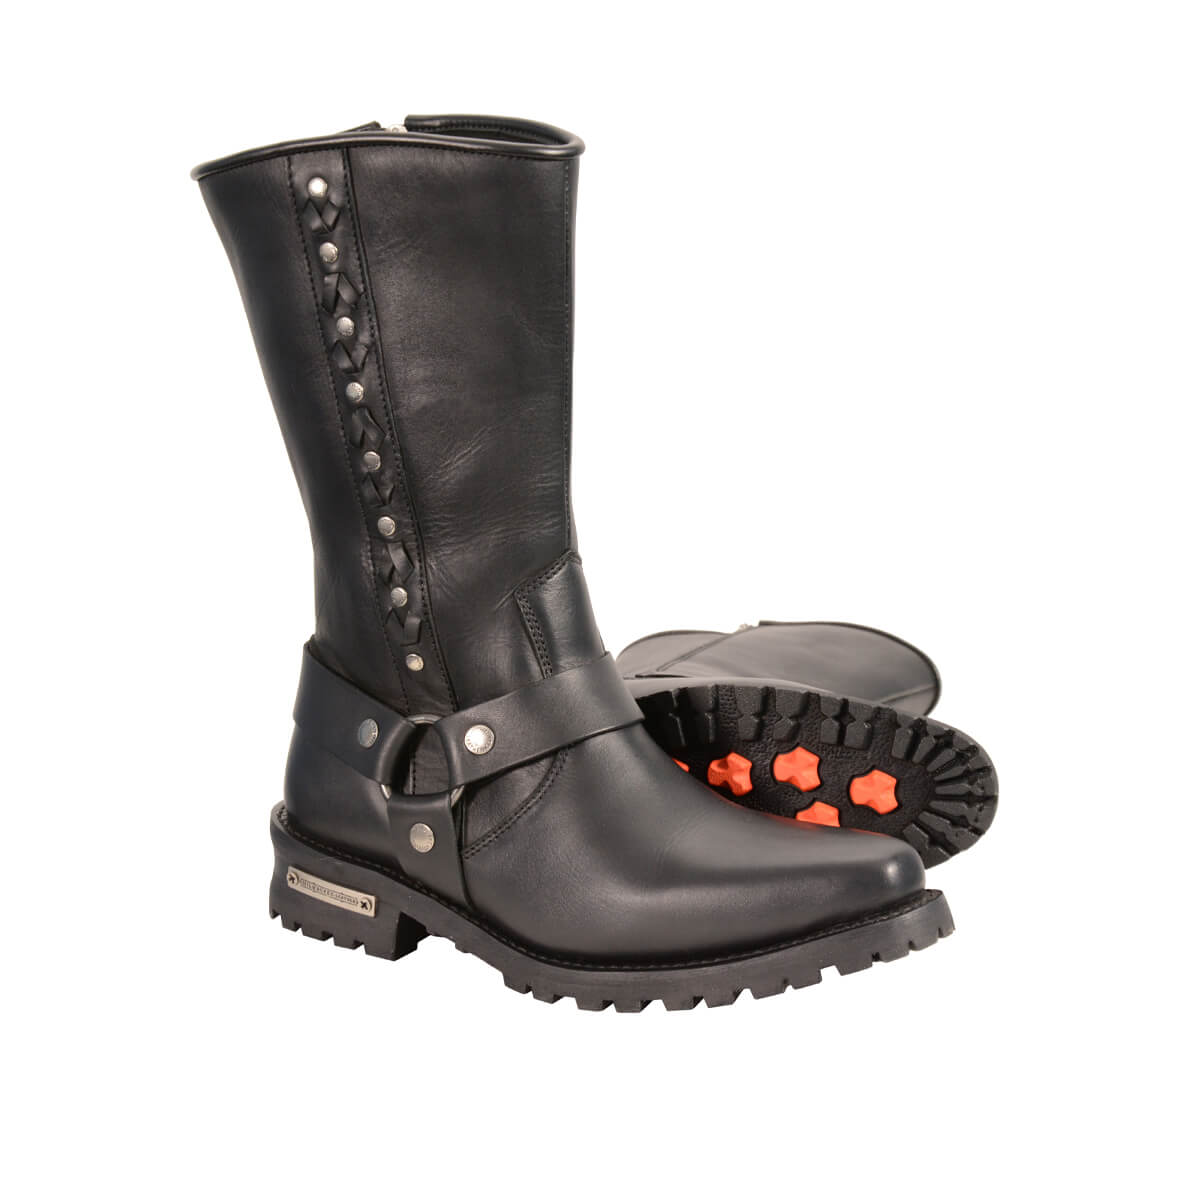 cbfd6c5275c MEN S REAL LEATHER J TOE MOTORCYCLE HARNESS BOOTS W  LACING ...